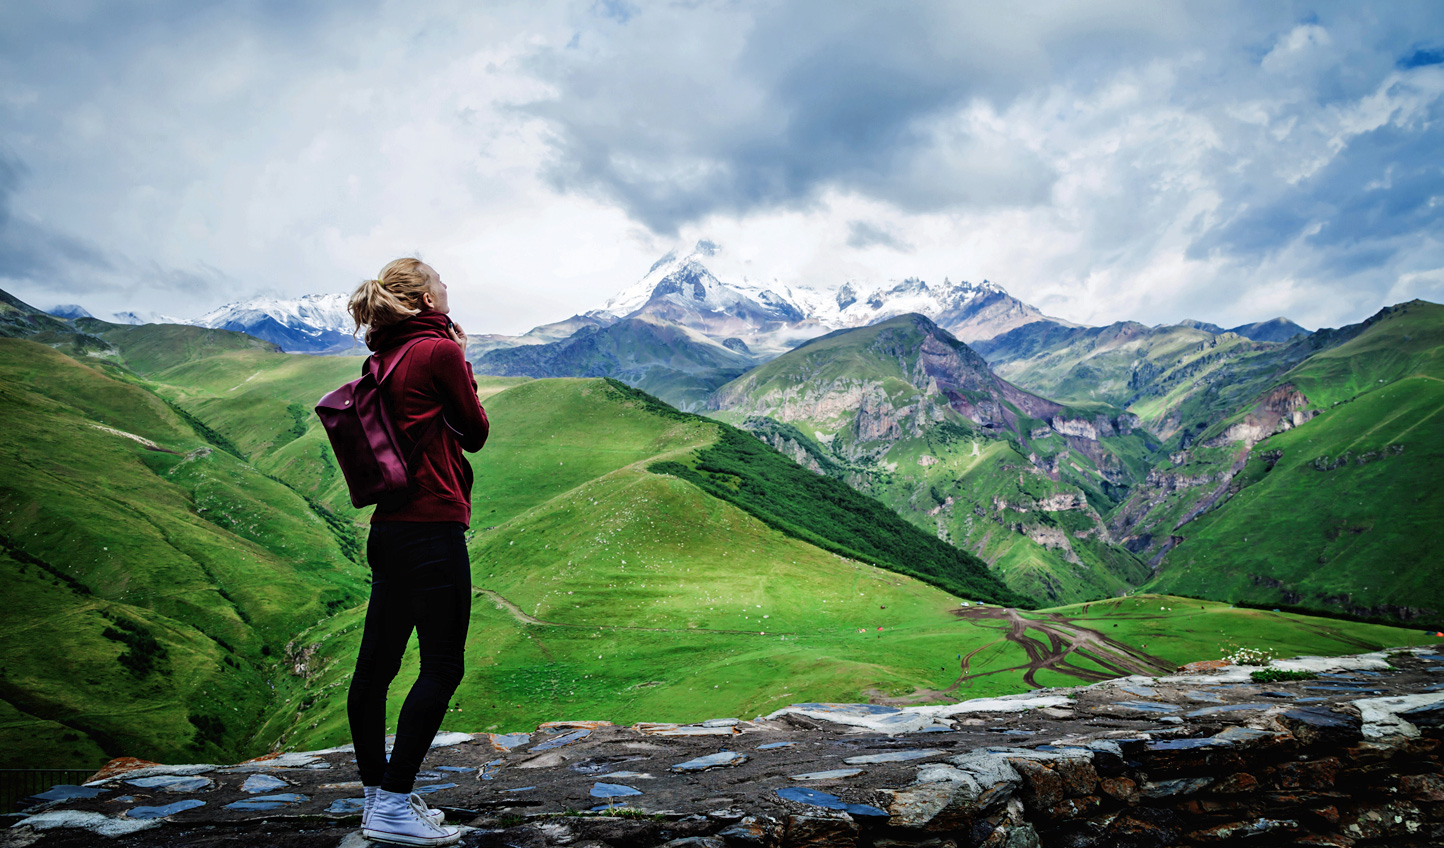 Hike through the Caucasus mountains of Kazbegi